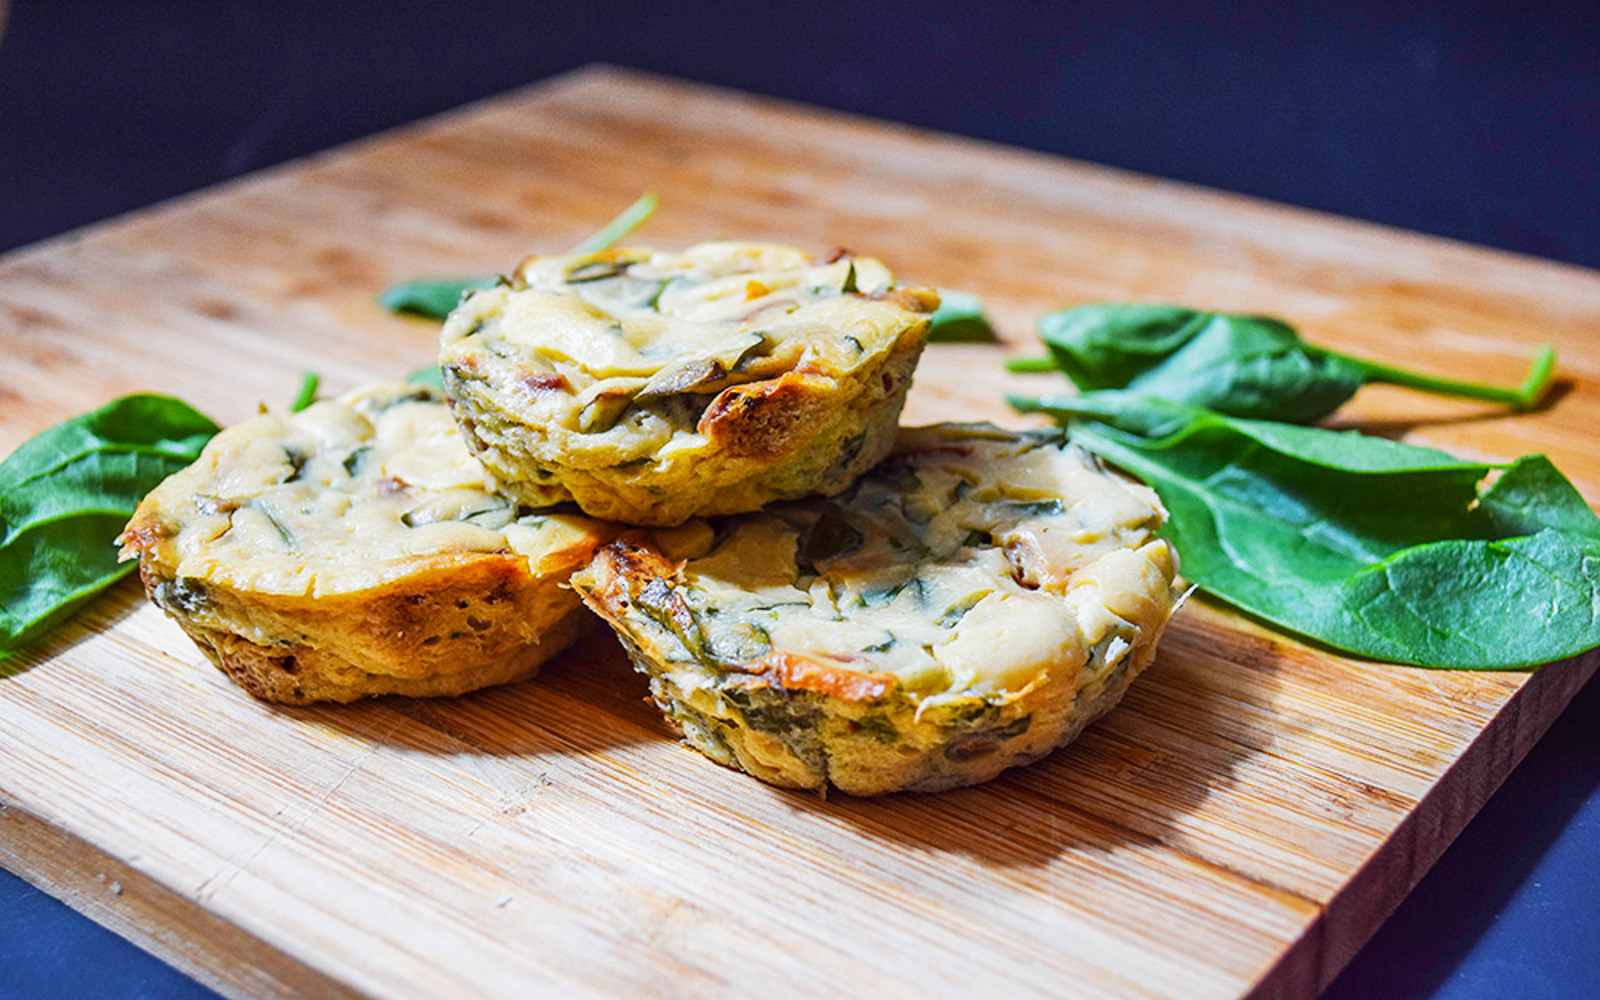 Spinach and Sun-Dried Tomato Crustless Quiches 1